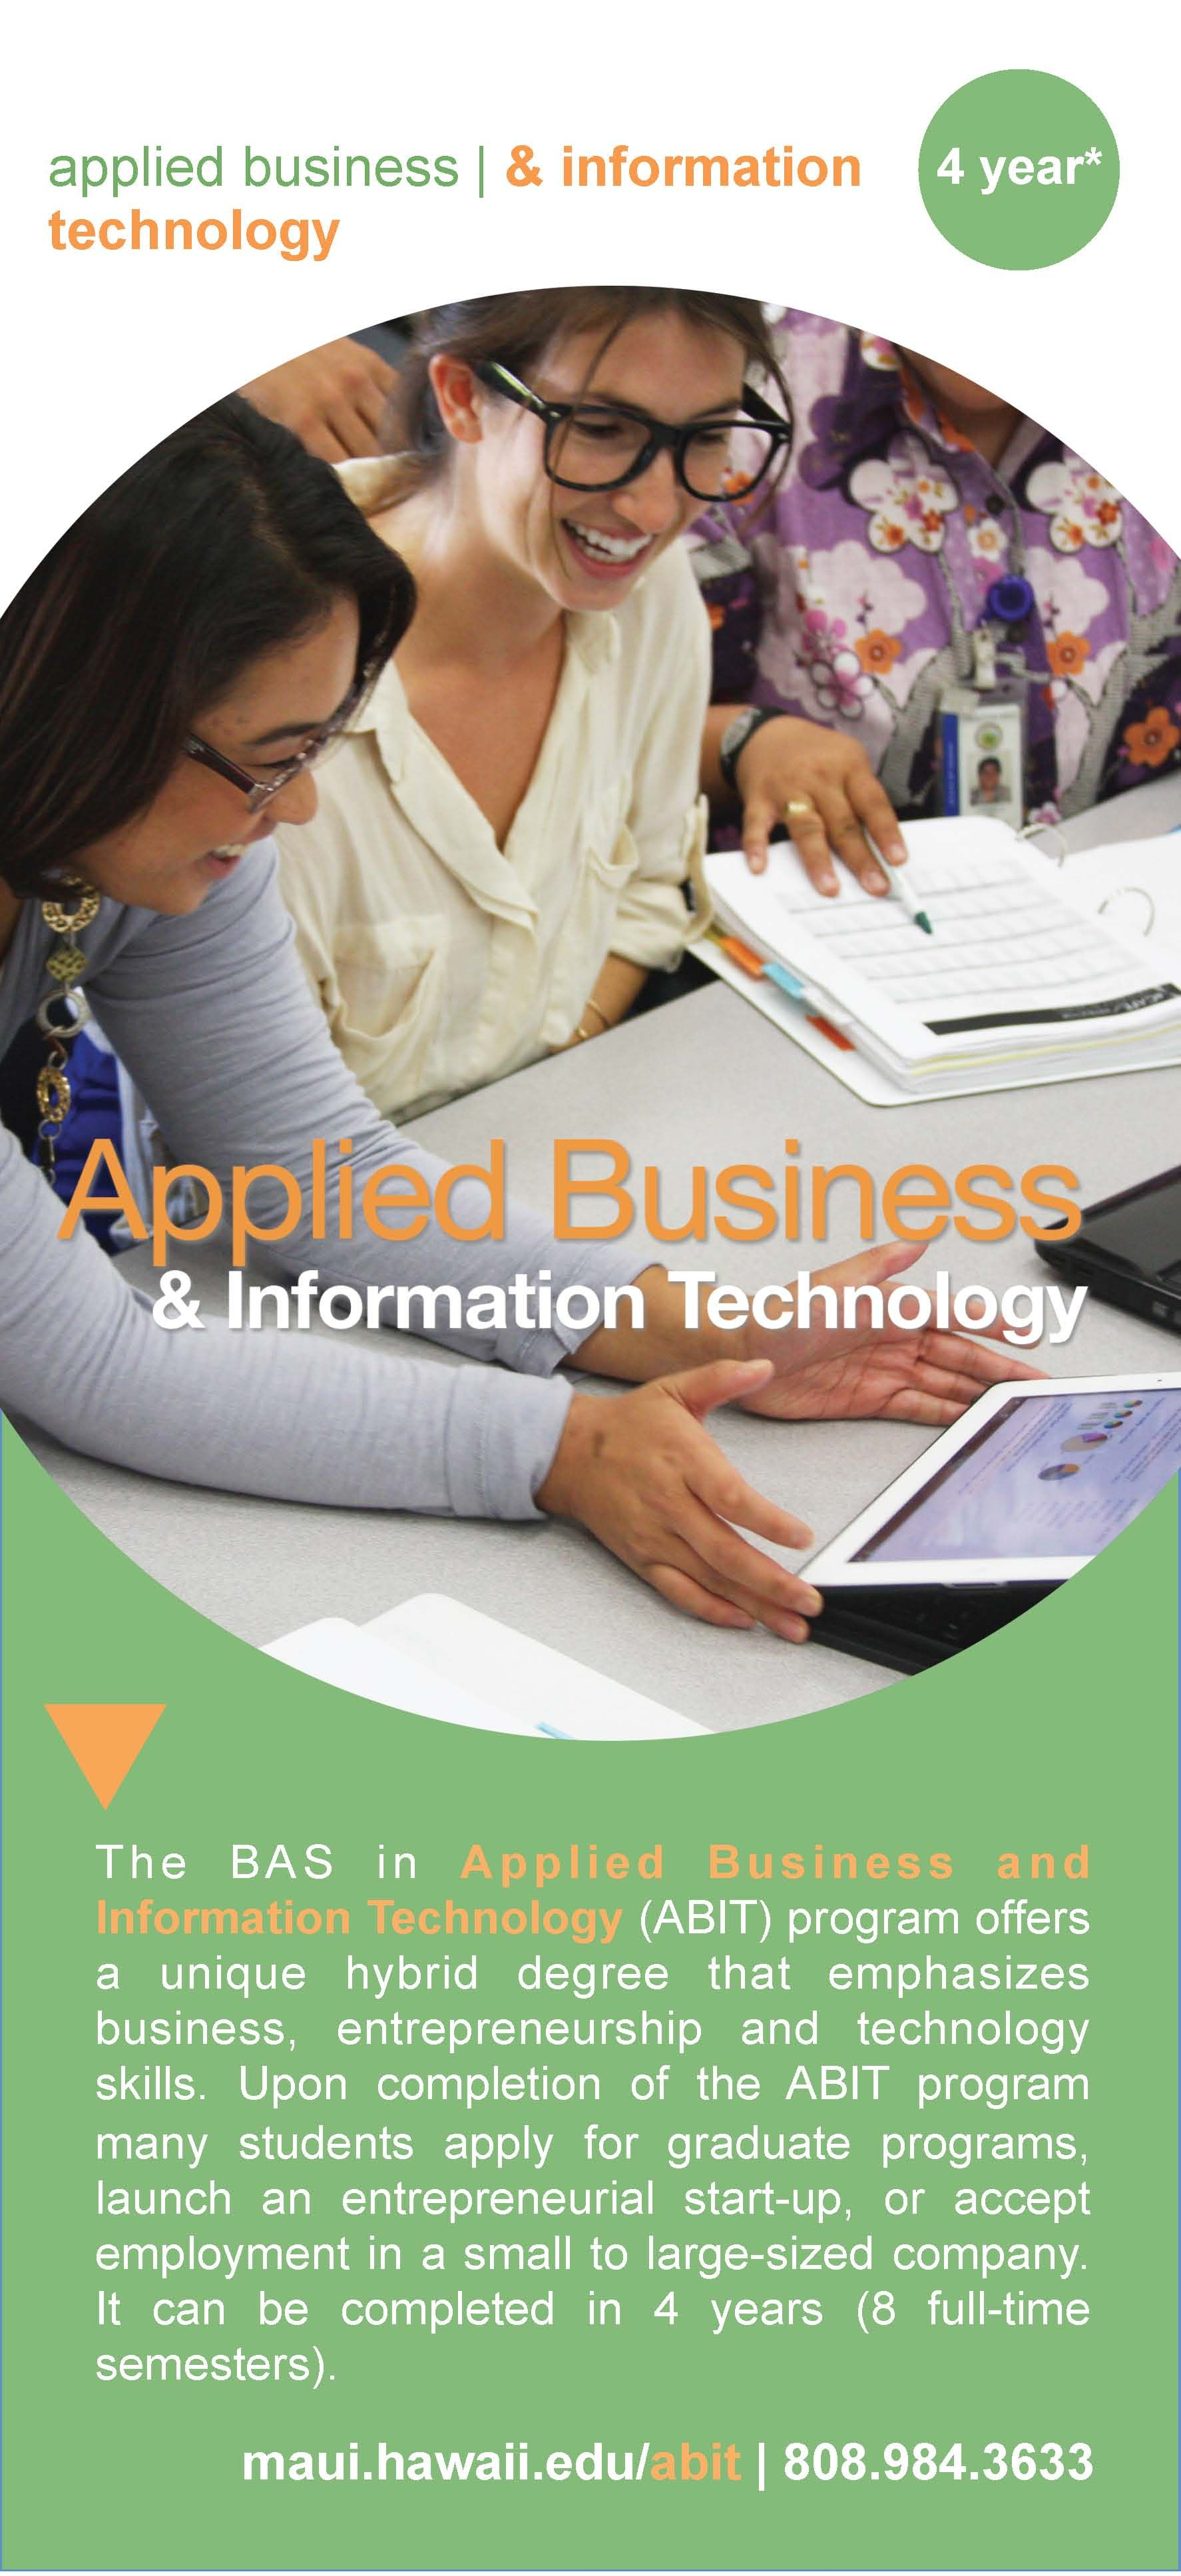 Applied Business Information Technology Technology Skills Computer Science Engineering Information Technology